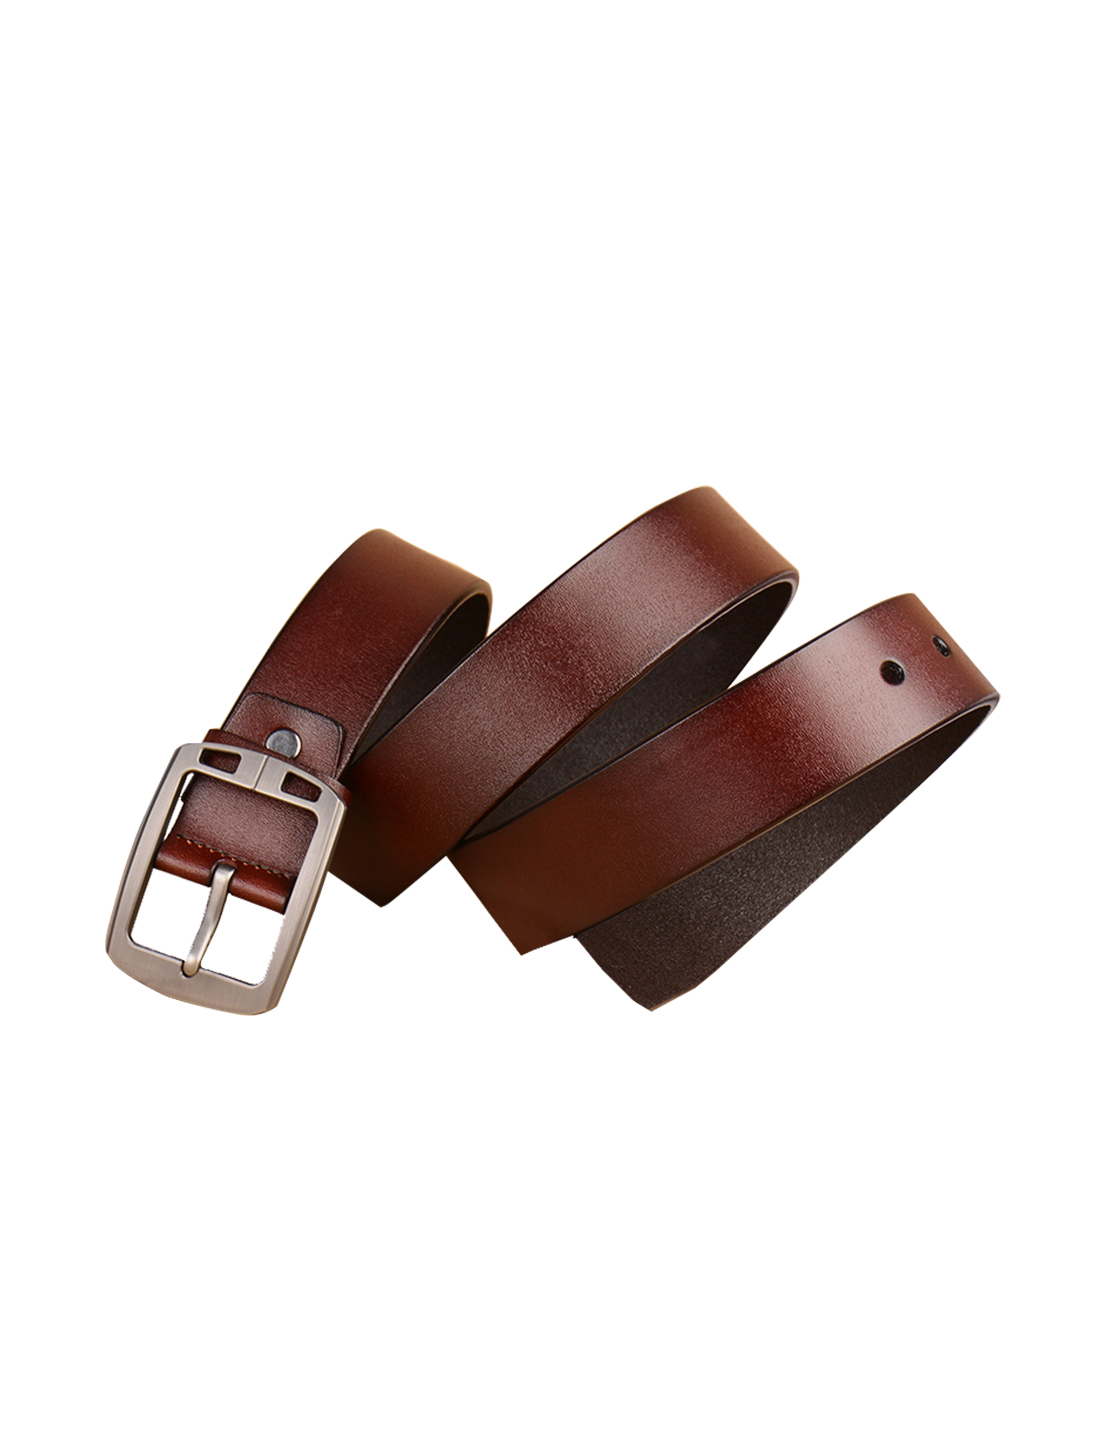 Mens Antique Solid Pin Buckle Dress Leather Belt 38mm Width 1 1/2 Brown 110cm